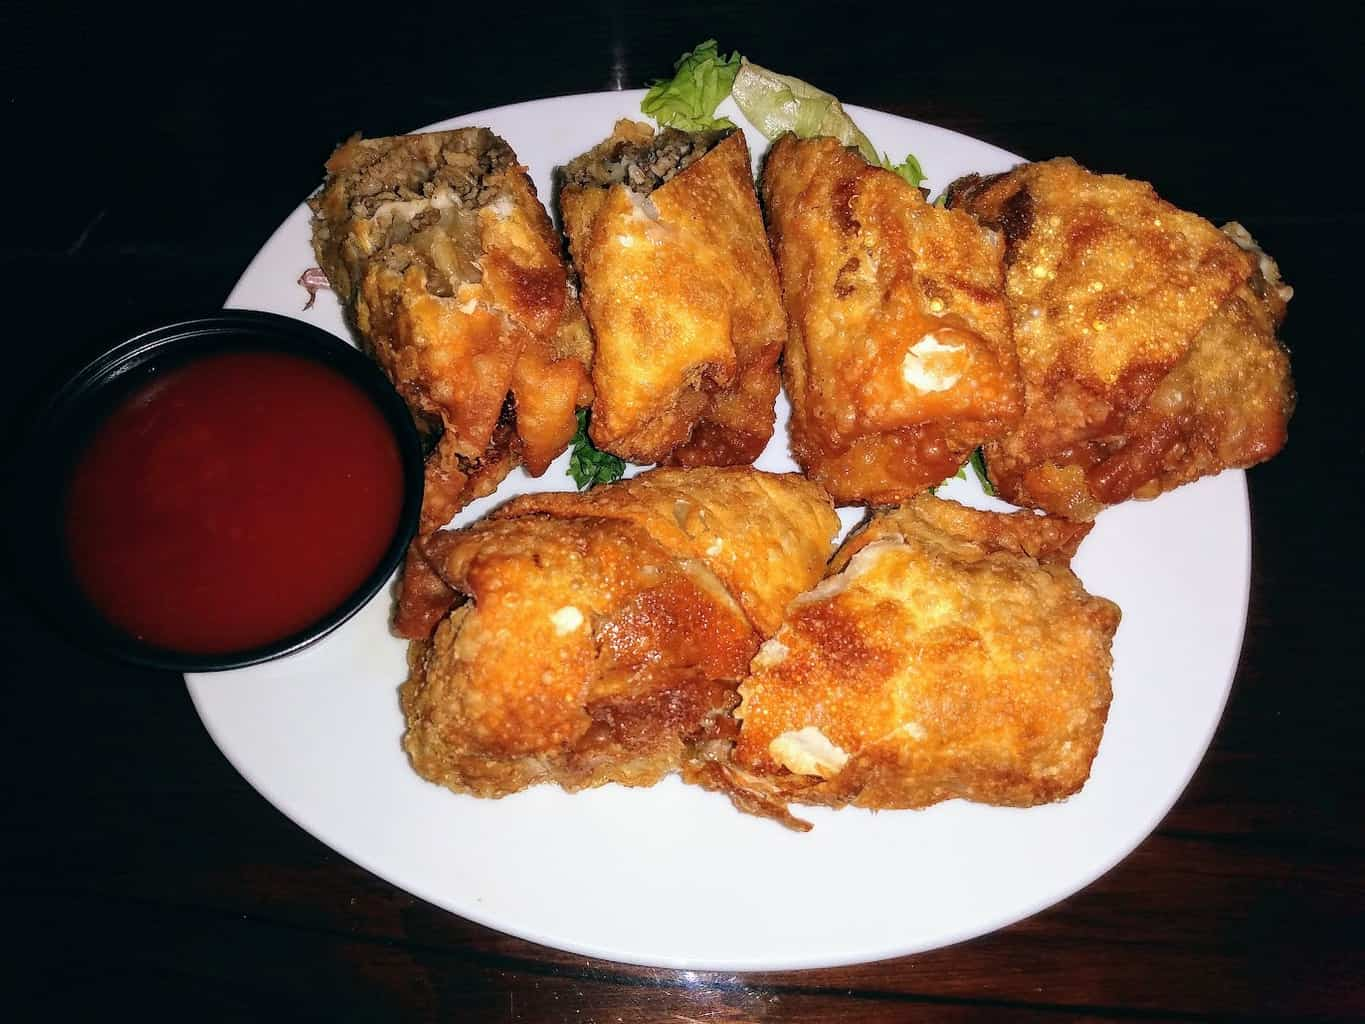 Cheesesteak Eggroll Appetizer at the Station Taphouse in Doylestown